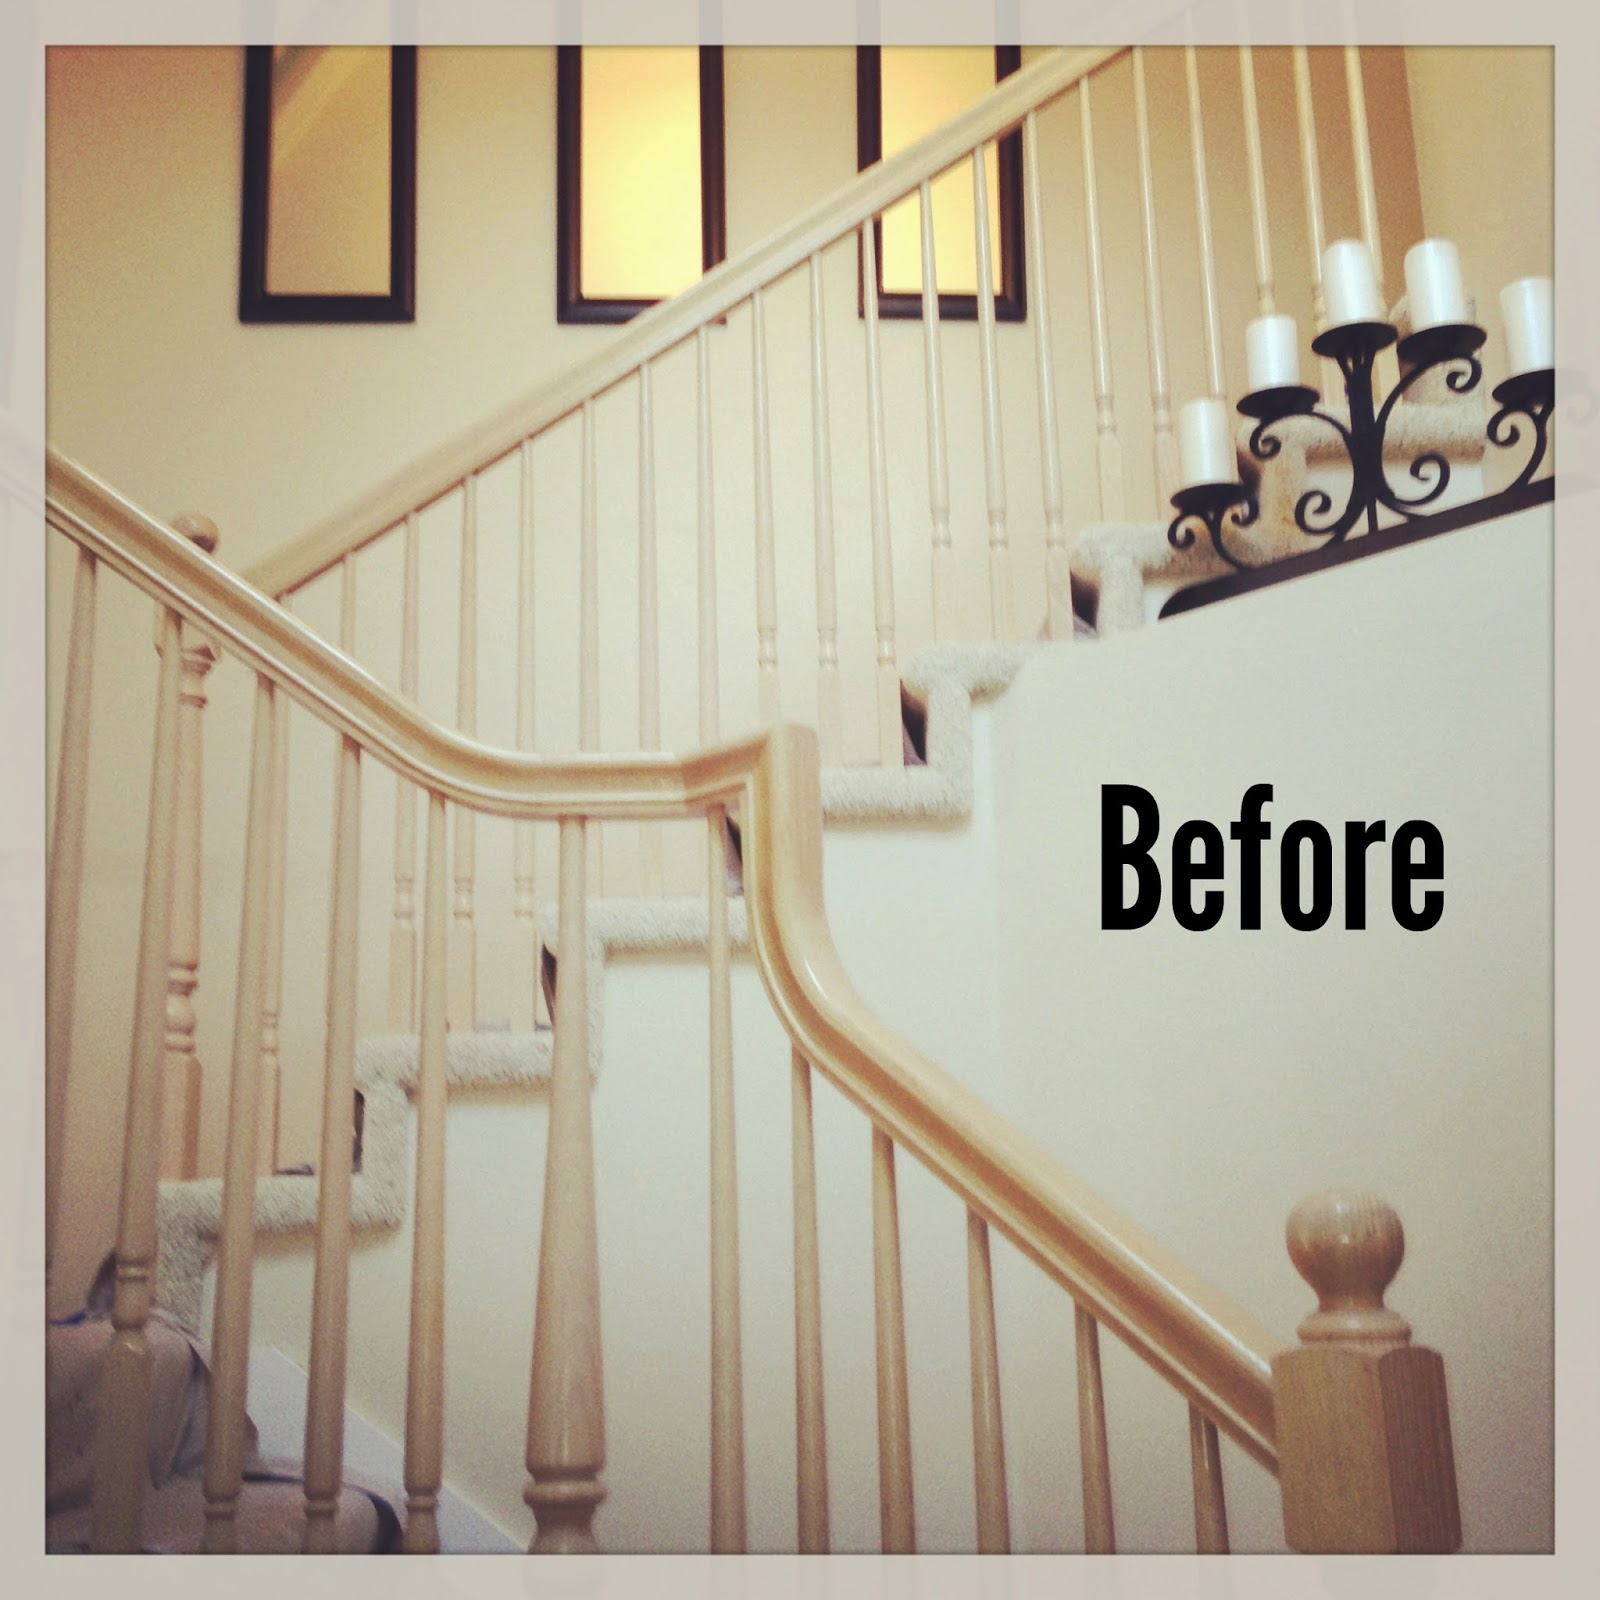 Michelle Paige Blogs: Before And After Of Painting A Banister